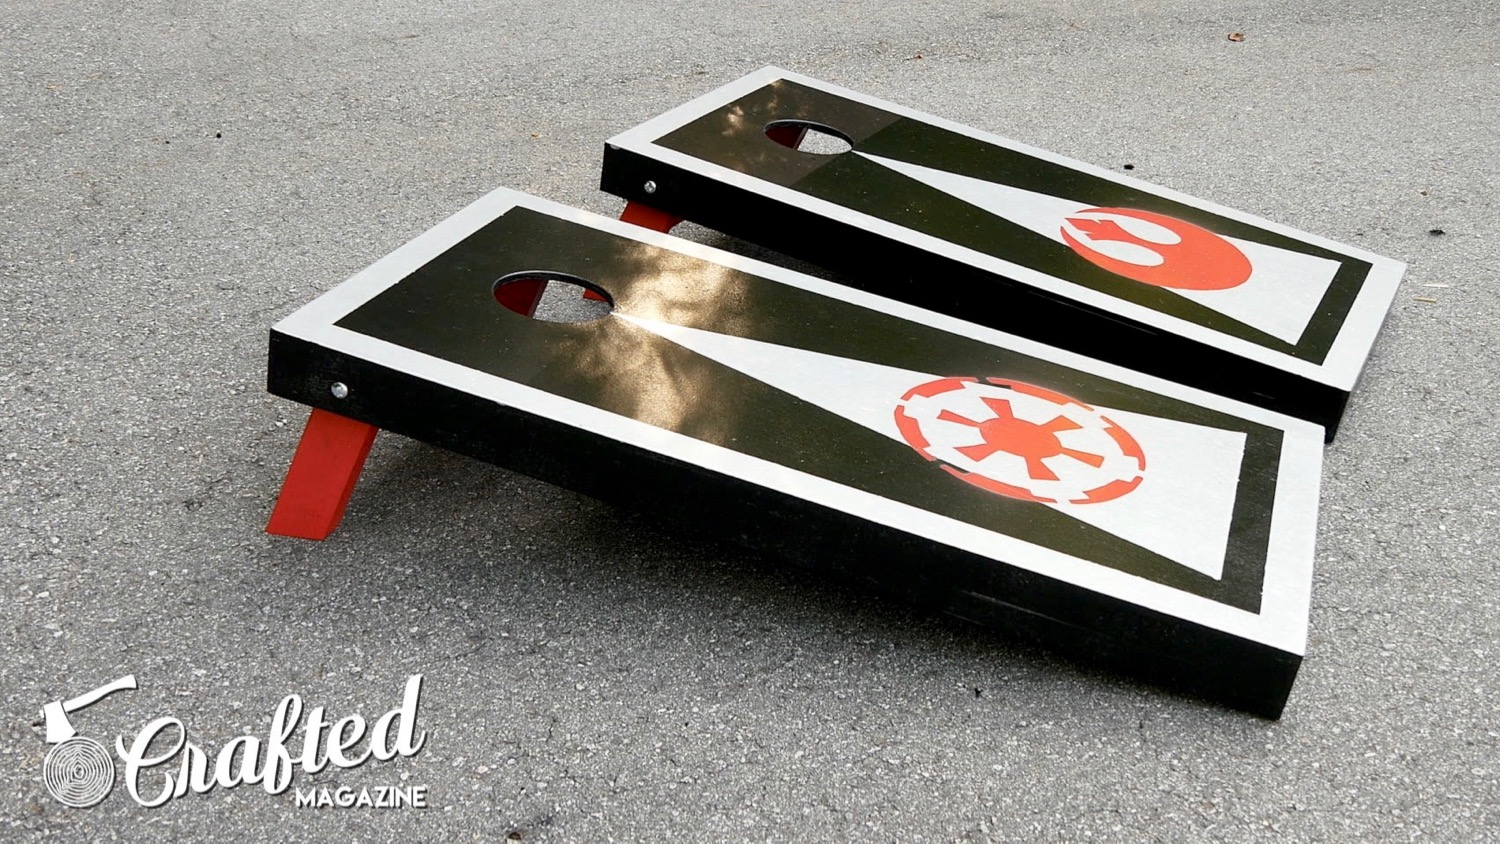 Star-Wars-Cornhole-Boards-How-To-DIY-29.jpg